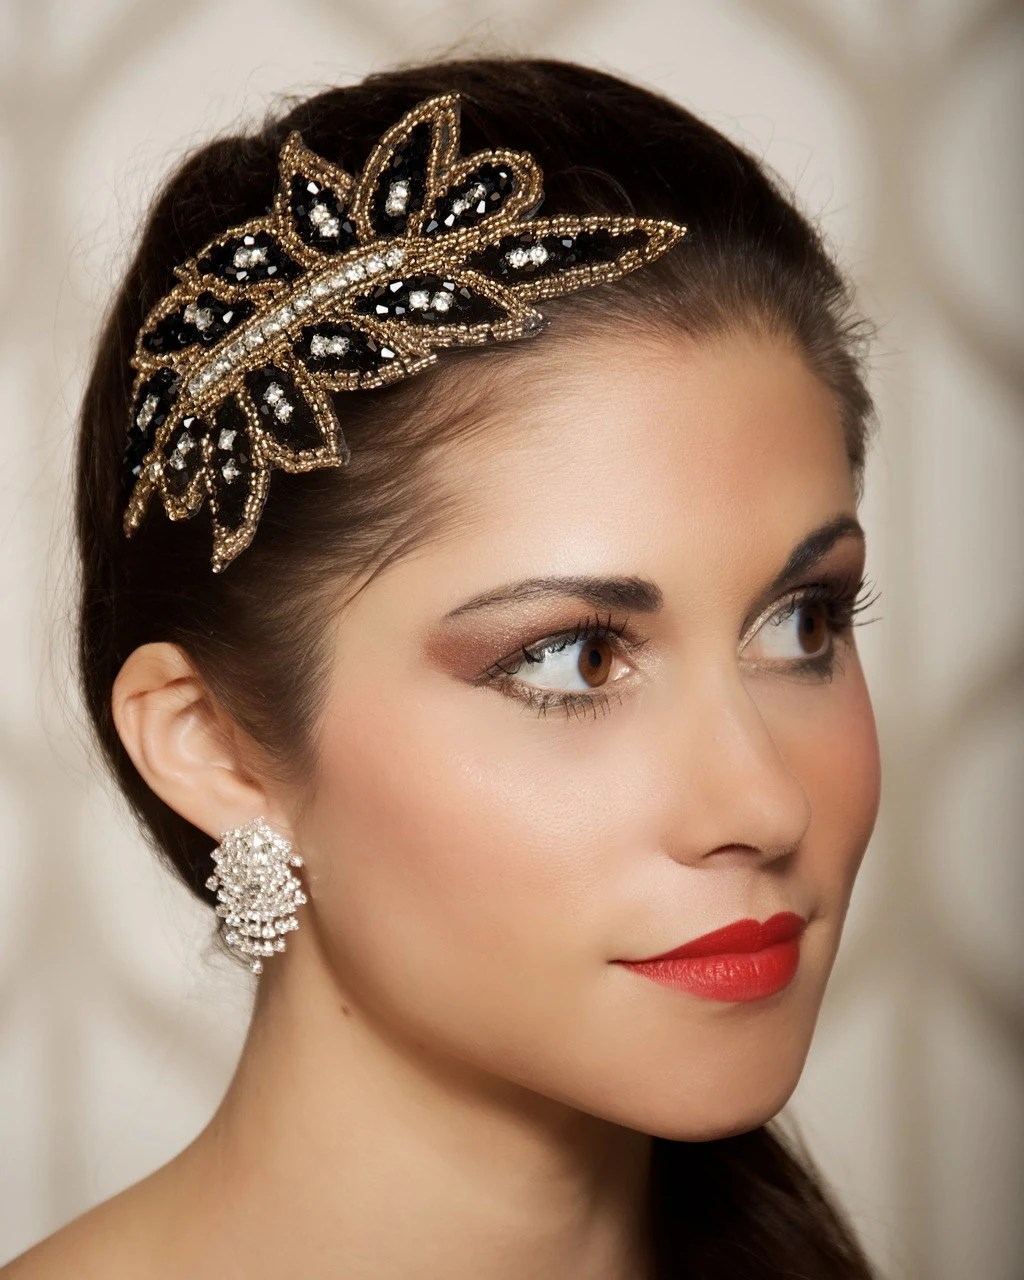 Gastby Party Headpiece Black Art Deco Hair Accessory Great